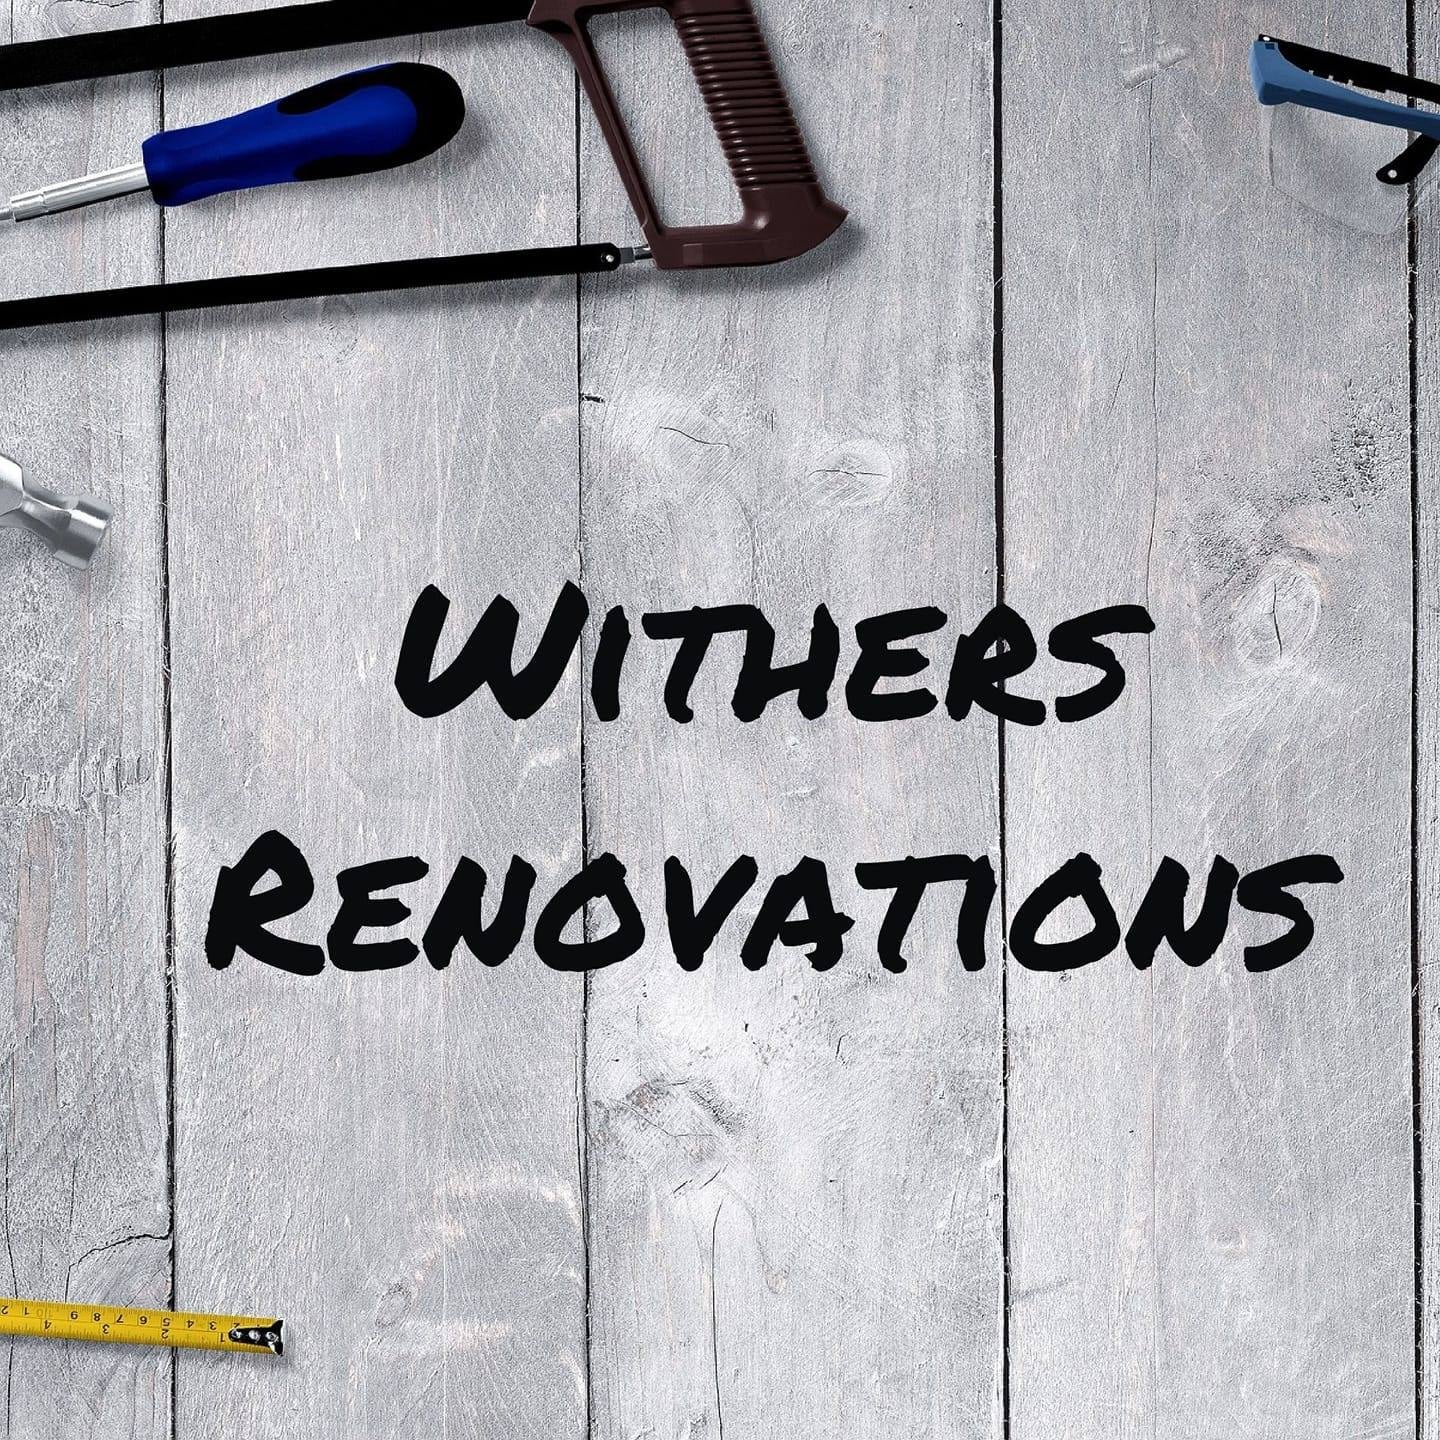 Withers Renovations